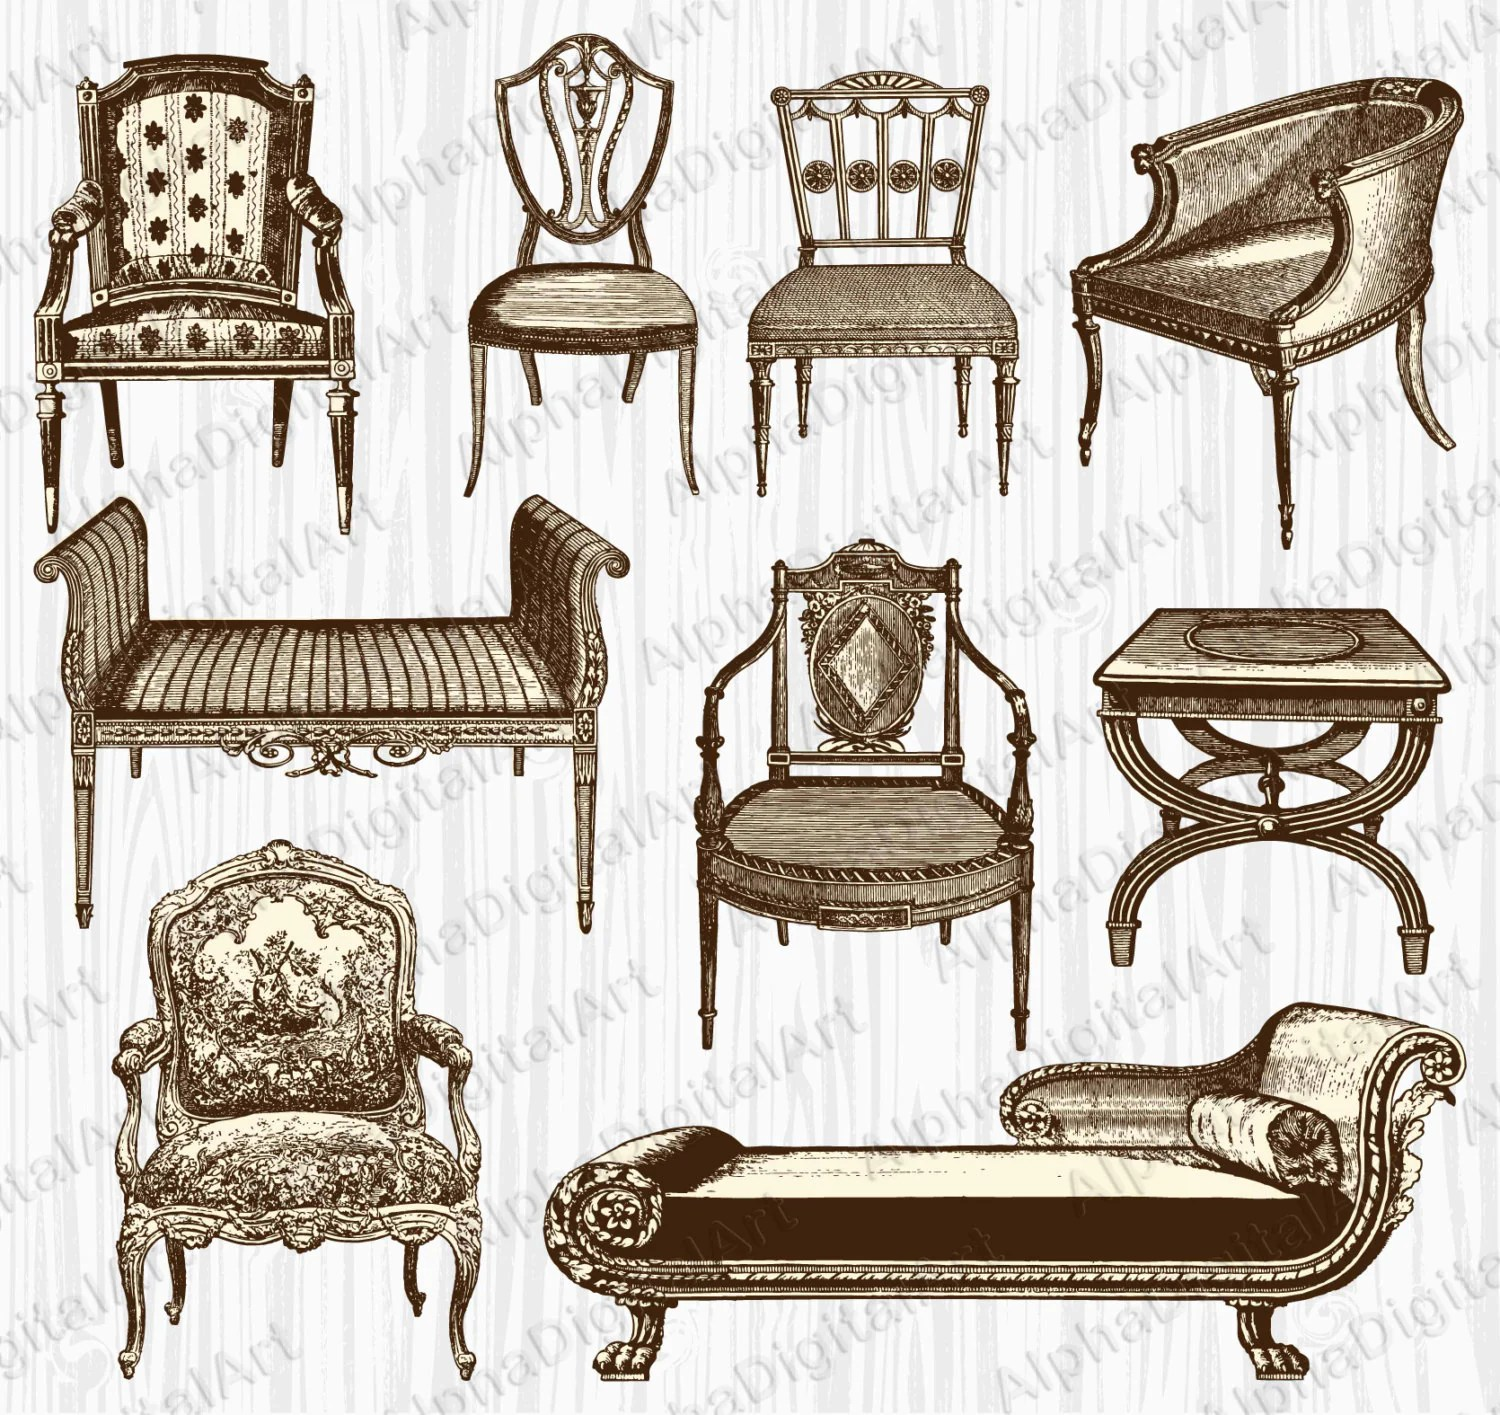 hight resolution of 50 9 vintage furniture clipart